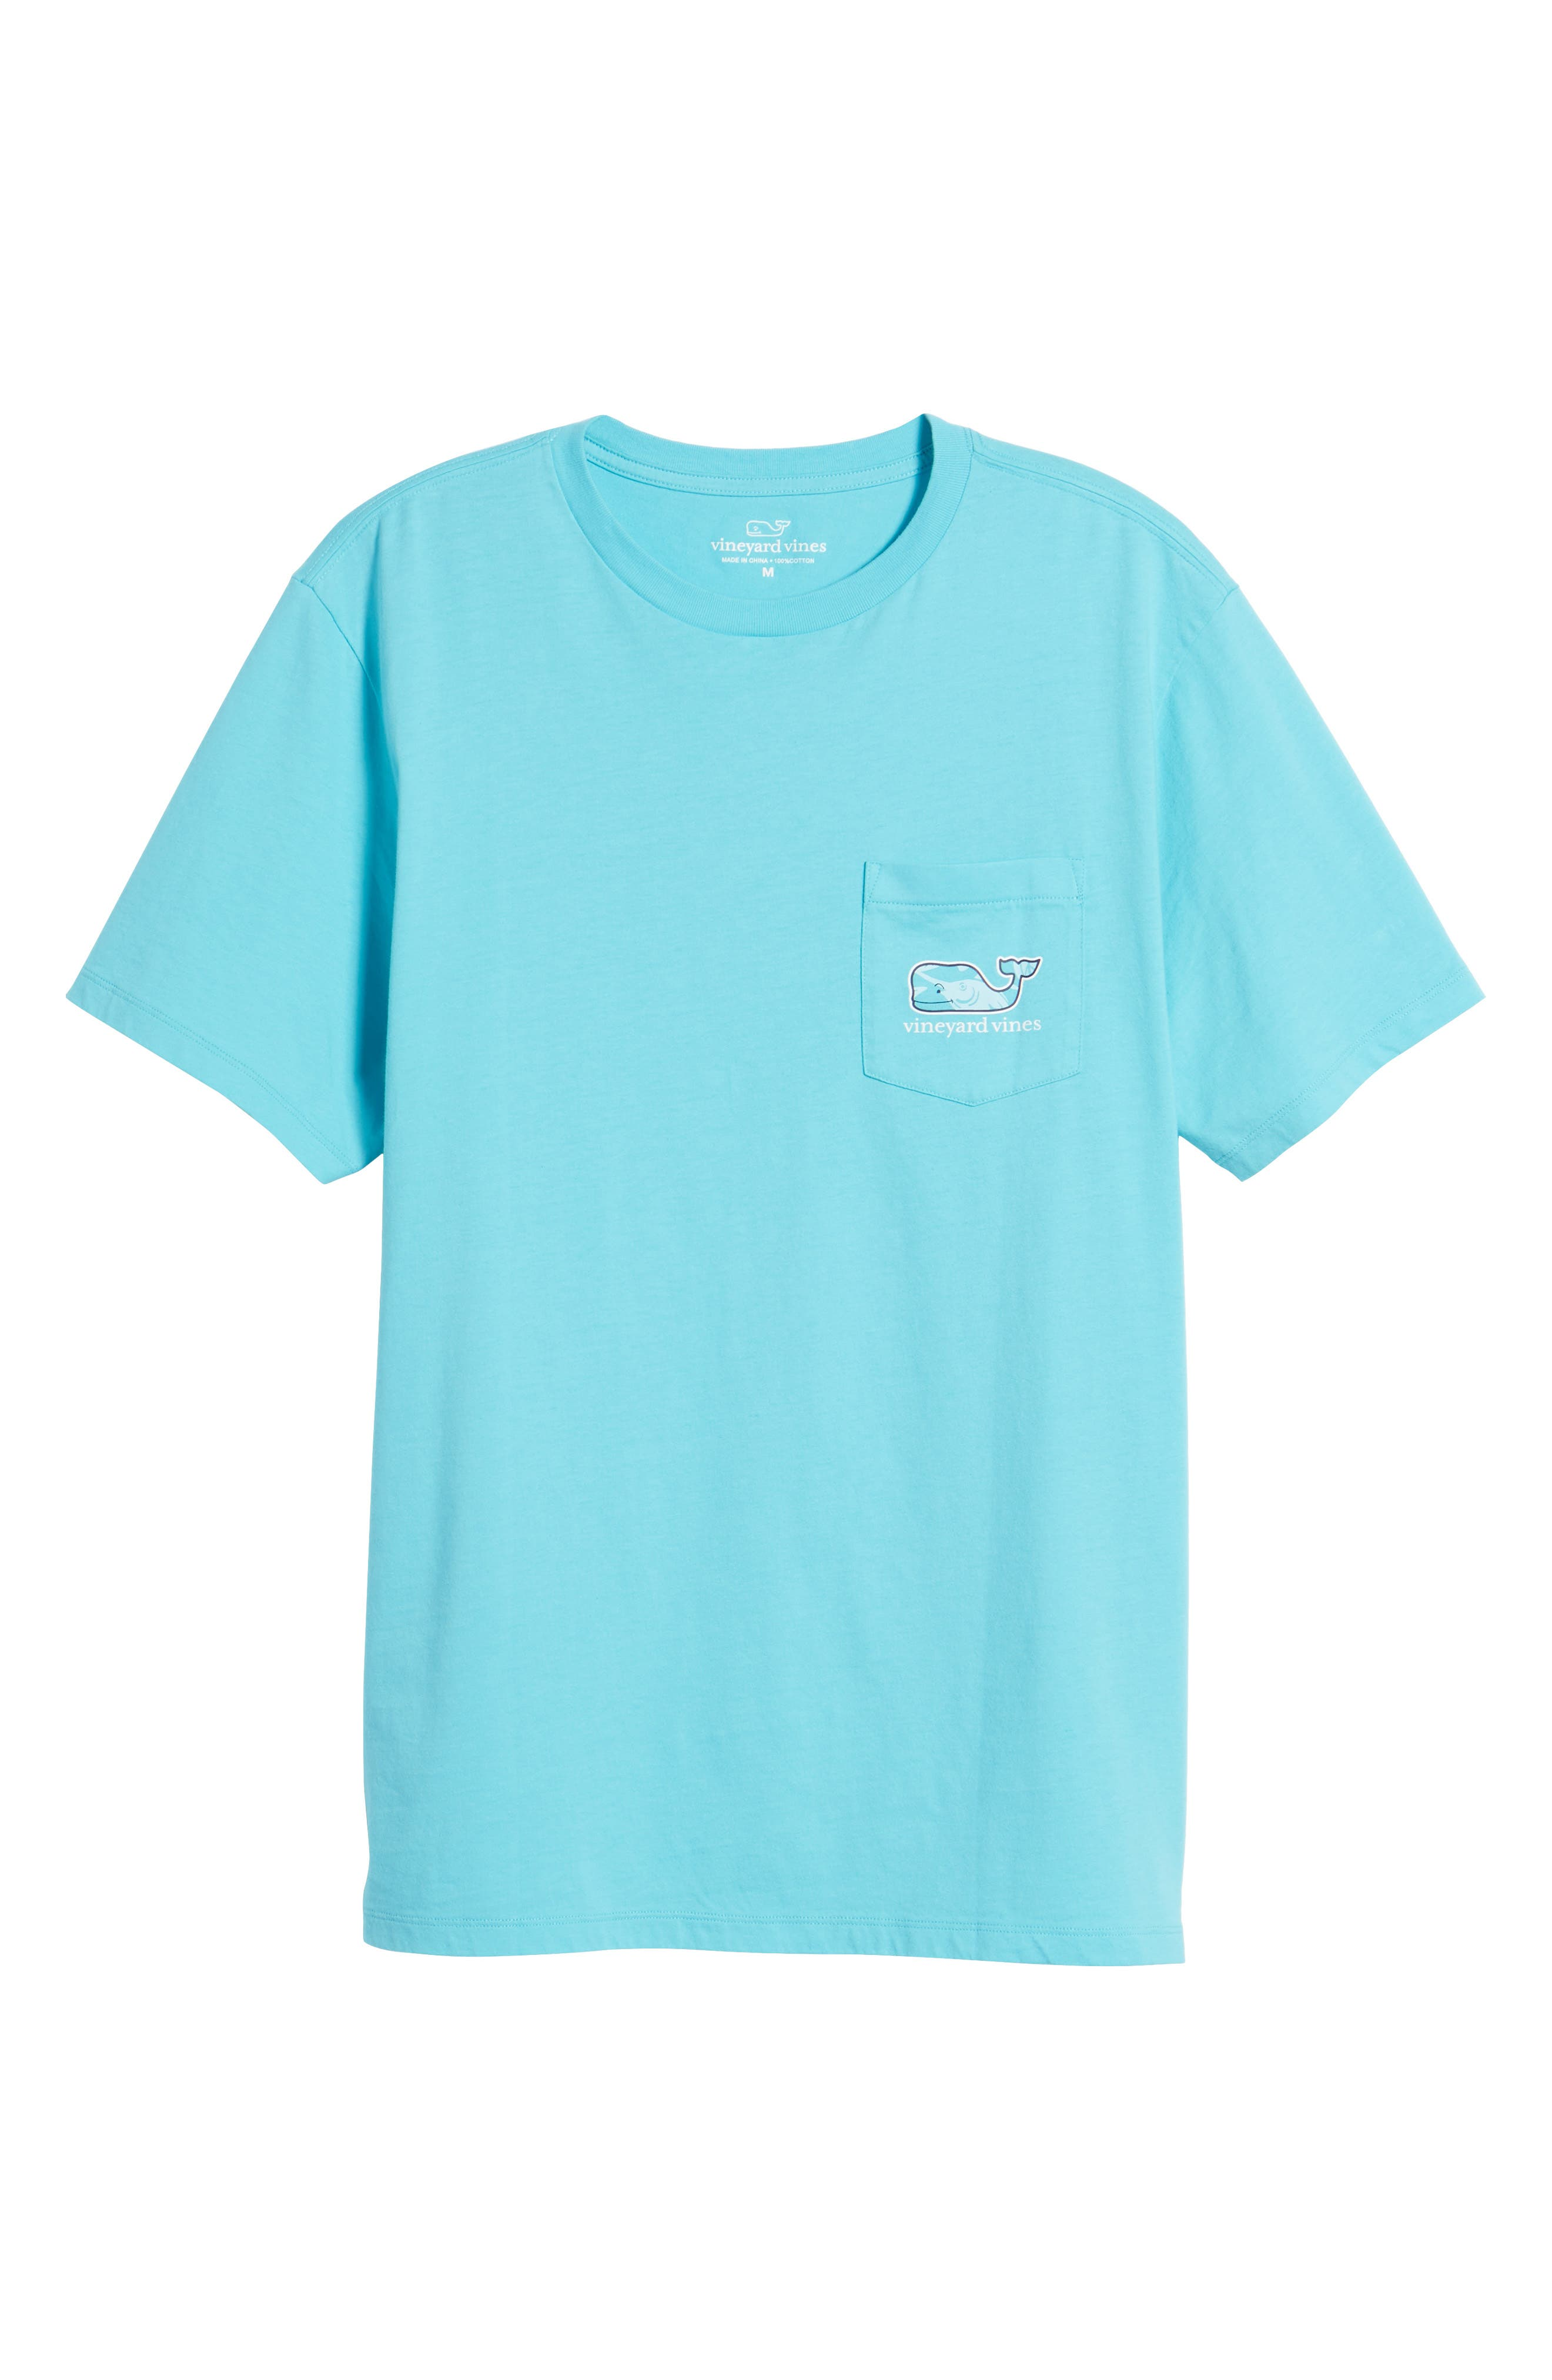 Marlin out of Water Whale Fill Pocket T-Shirt,                             Alternate thumbnail 6, color,                             Turquoise